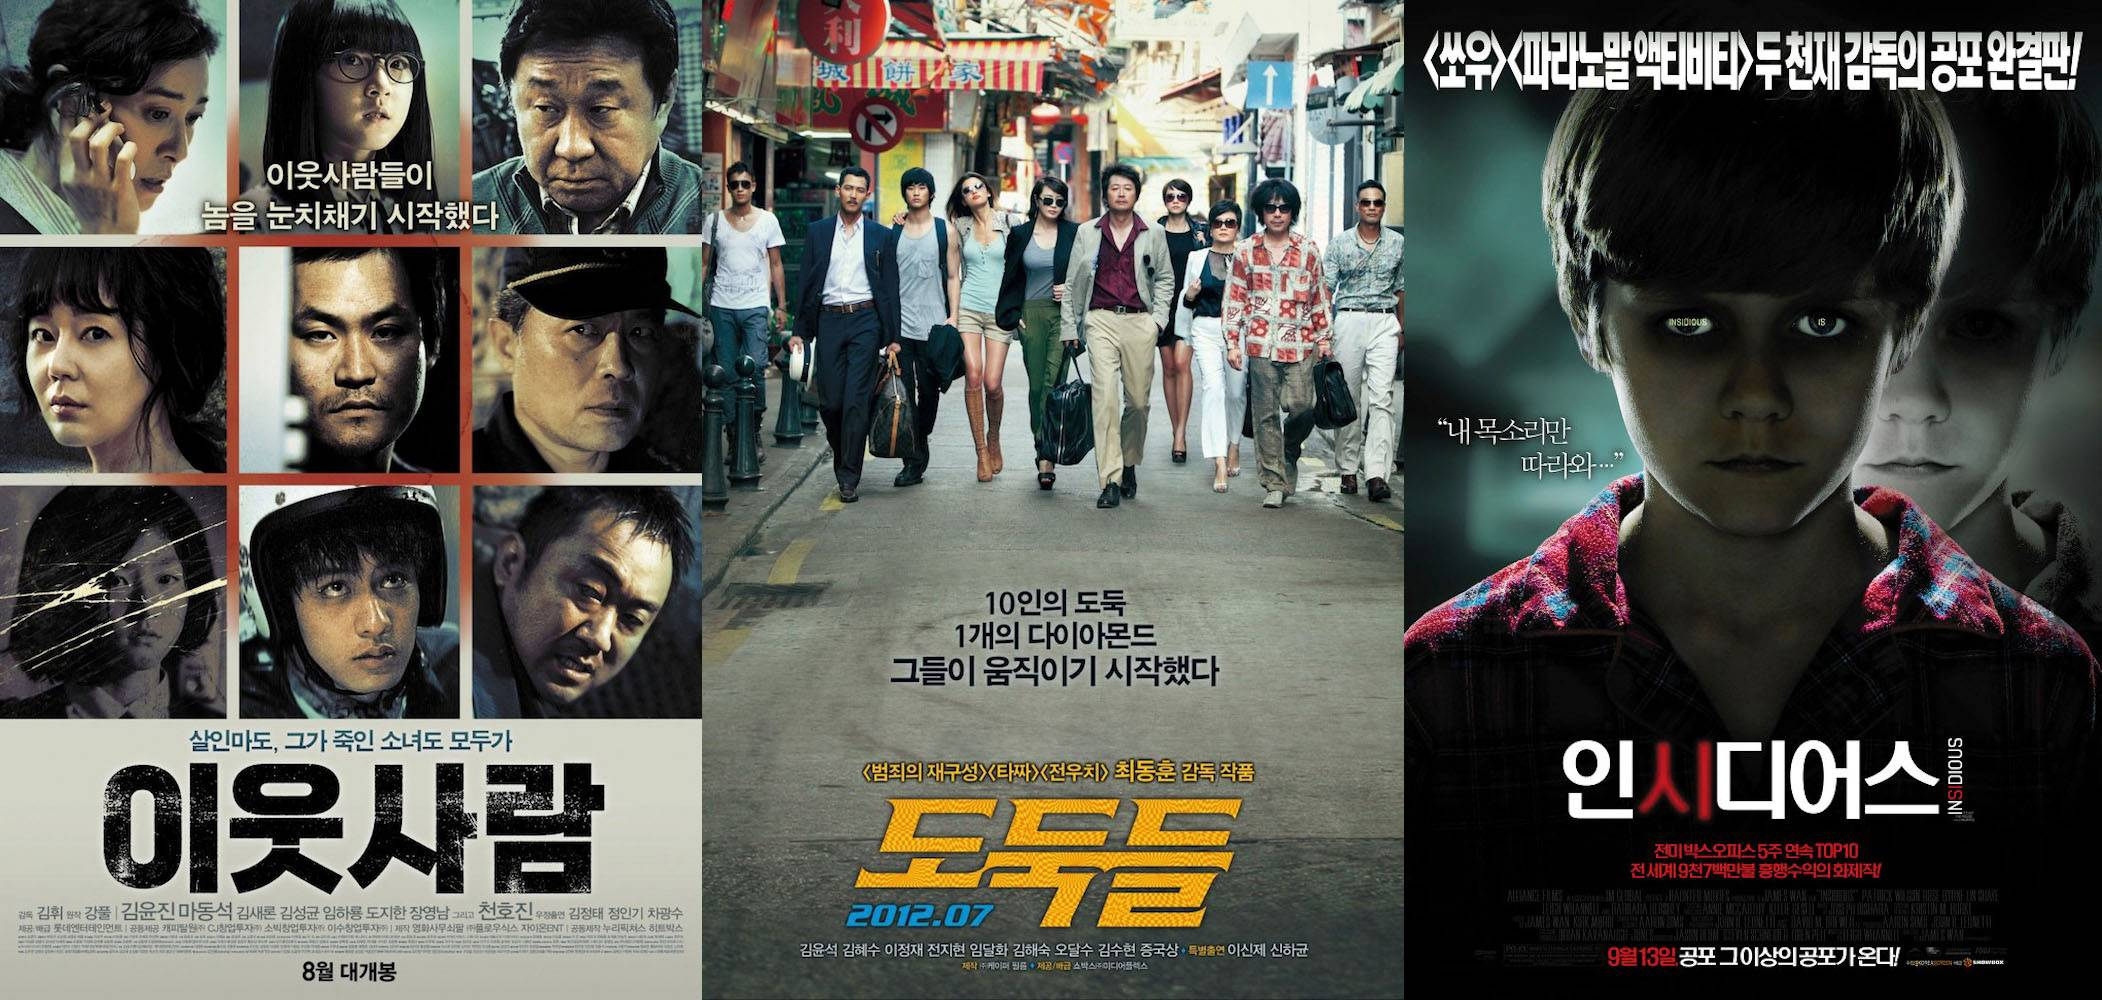 Hancinema 39 s film review korean weekend box office 2012 - Movie box office results this weekend ...